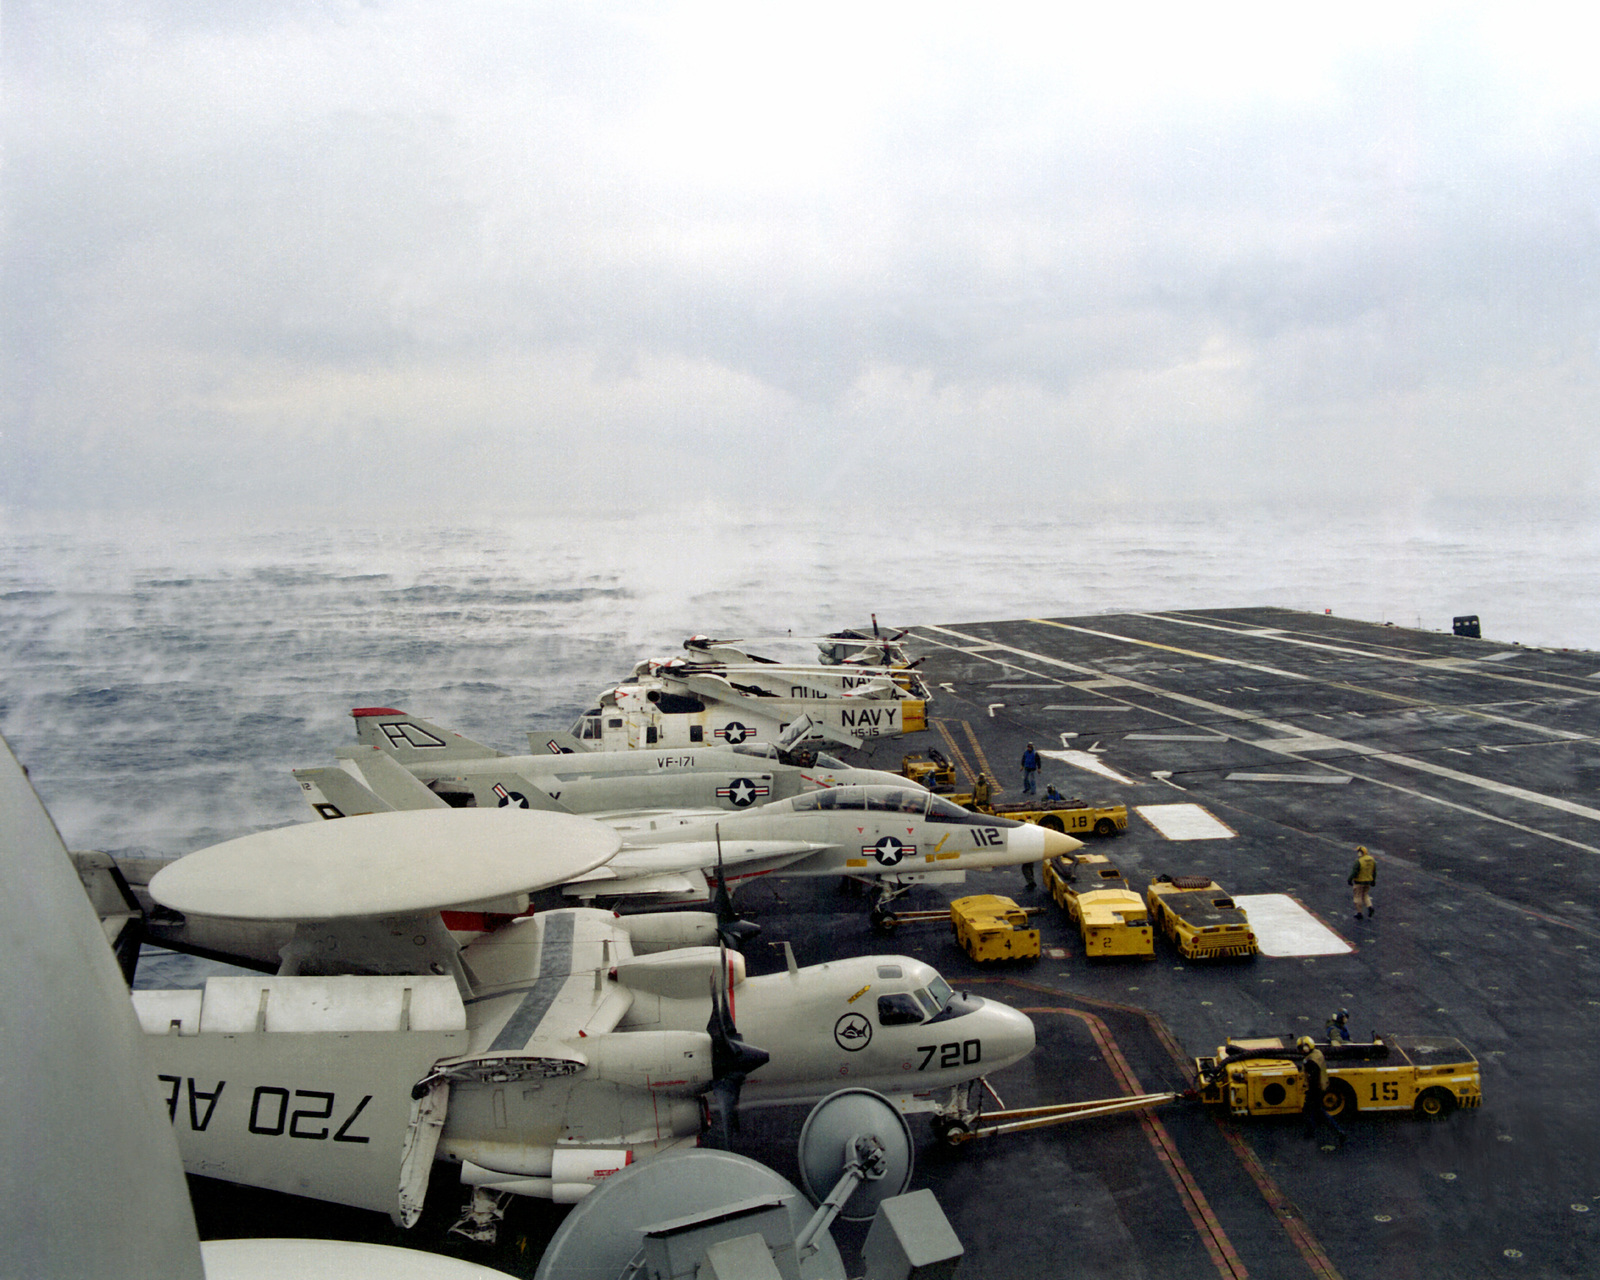 A view of an E-2 Hawkeye aircraft, and F-14 Tomcat aircraft, an F-4 Phantom II aircraft, and several SH-3 King helicopters on the flight deck of the USS INDEPENDENCE (CV-62) as the aircraft carrier encounters a dense sea mist